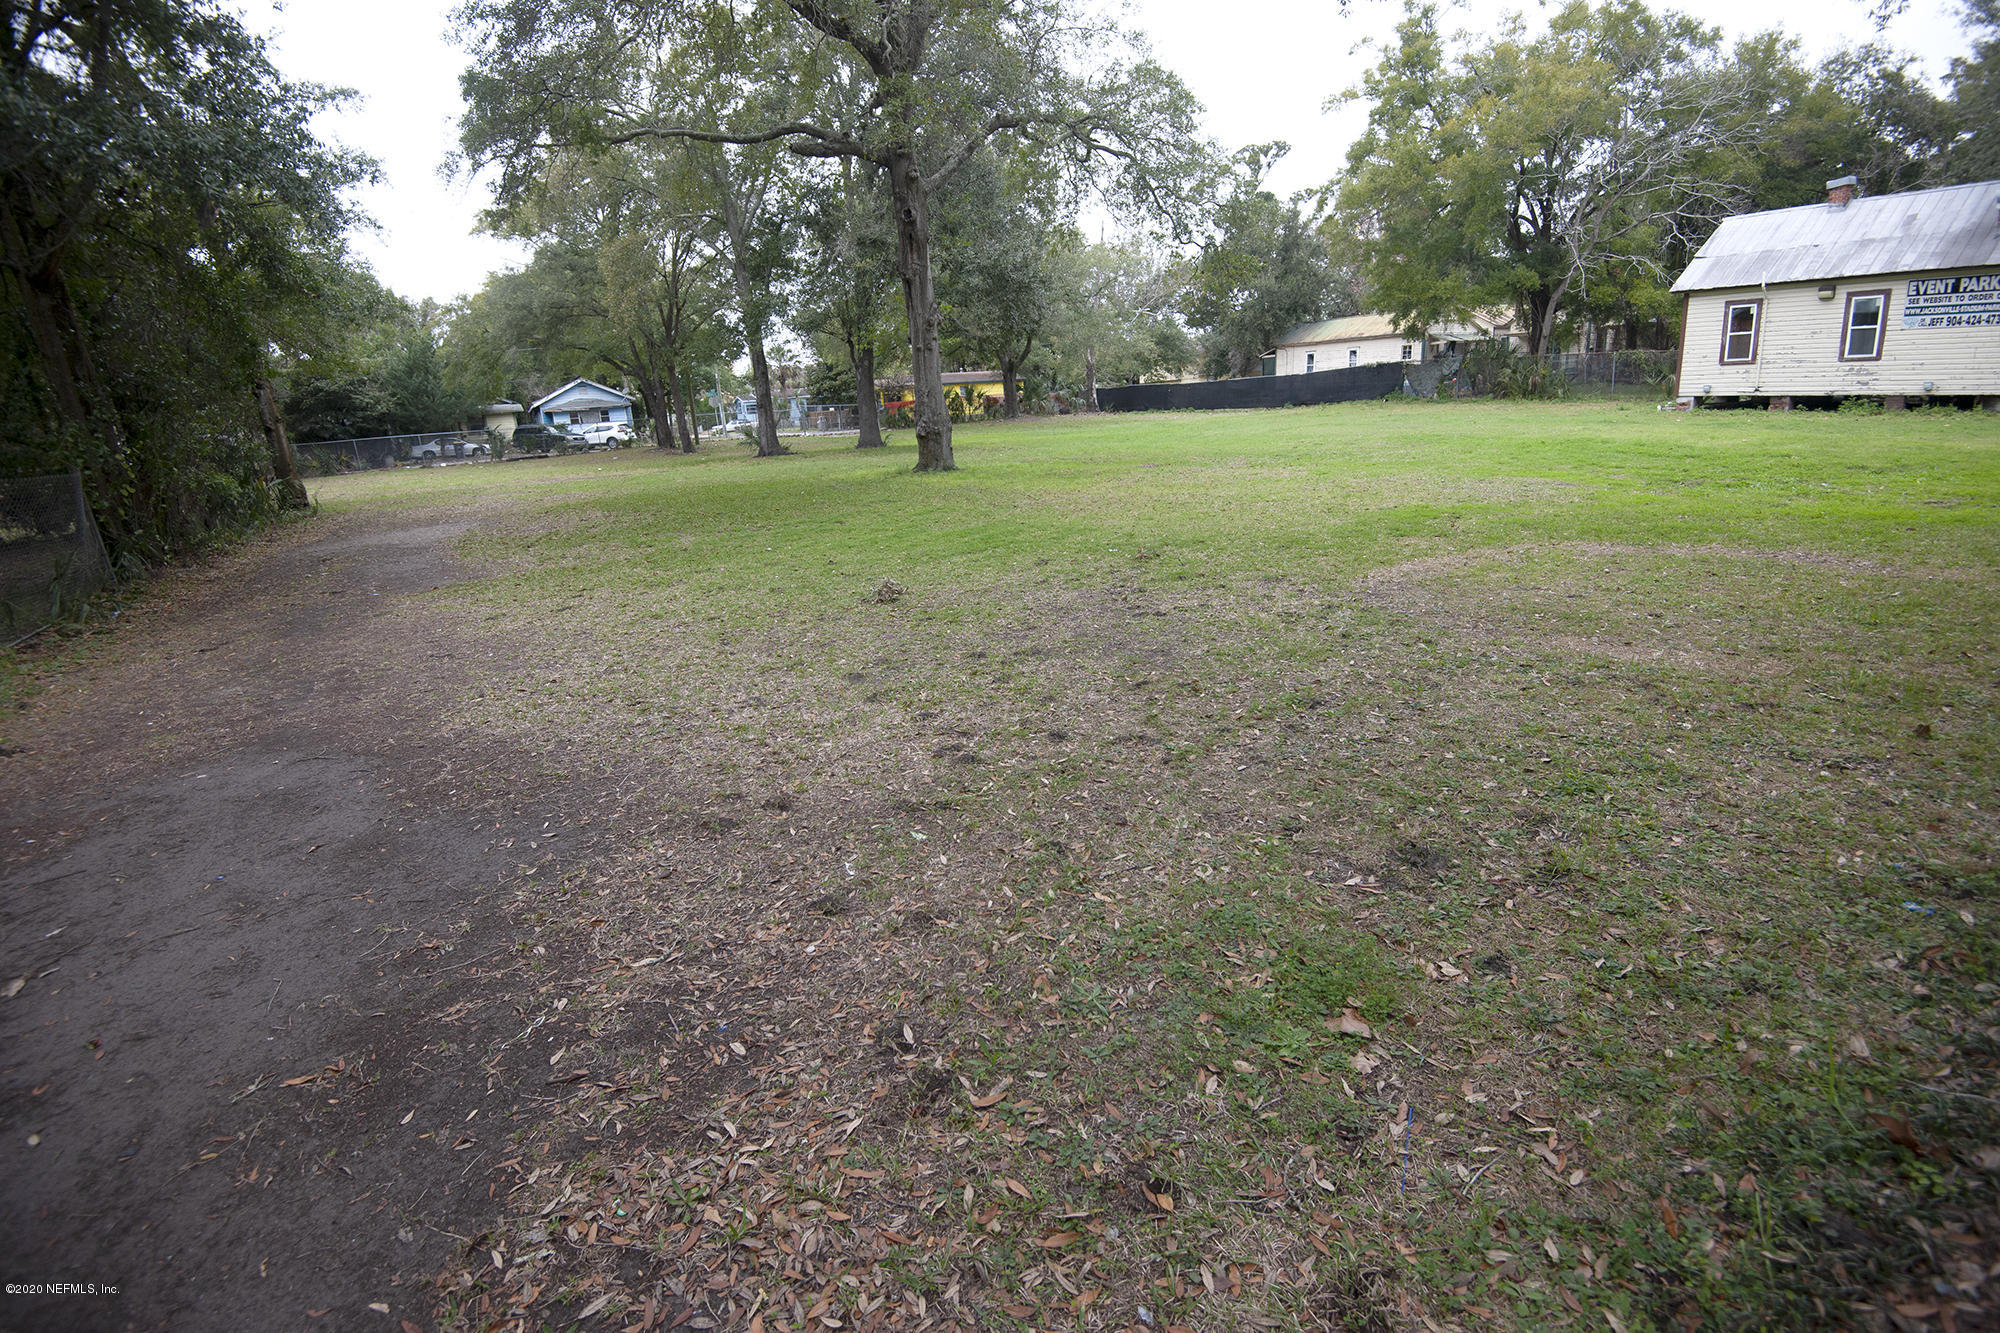 0 ALBERT, JACKSONVILLE, FLORIDA 32202, ,Commercial,For sale,ALBERT,1036171